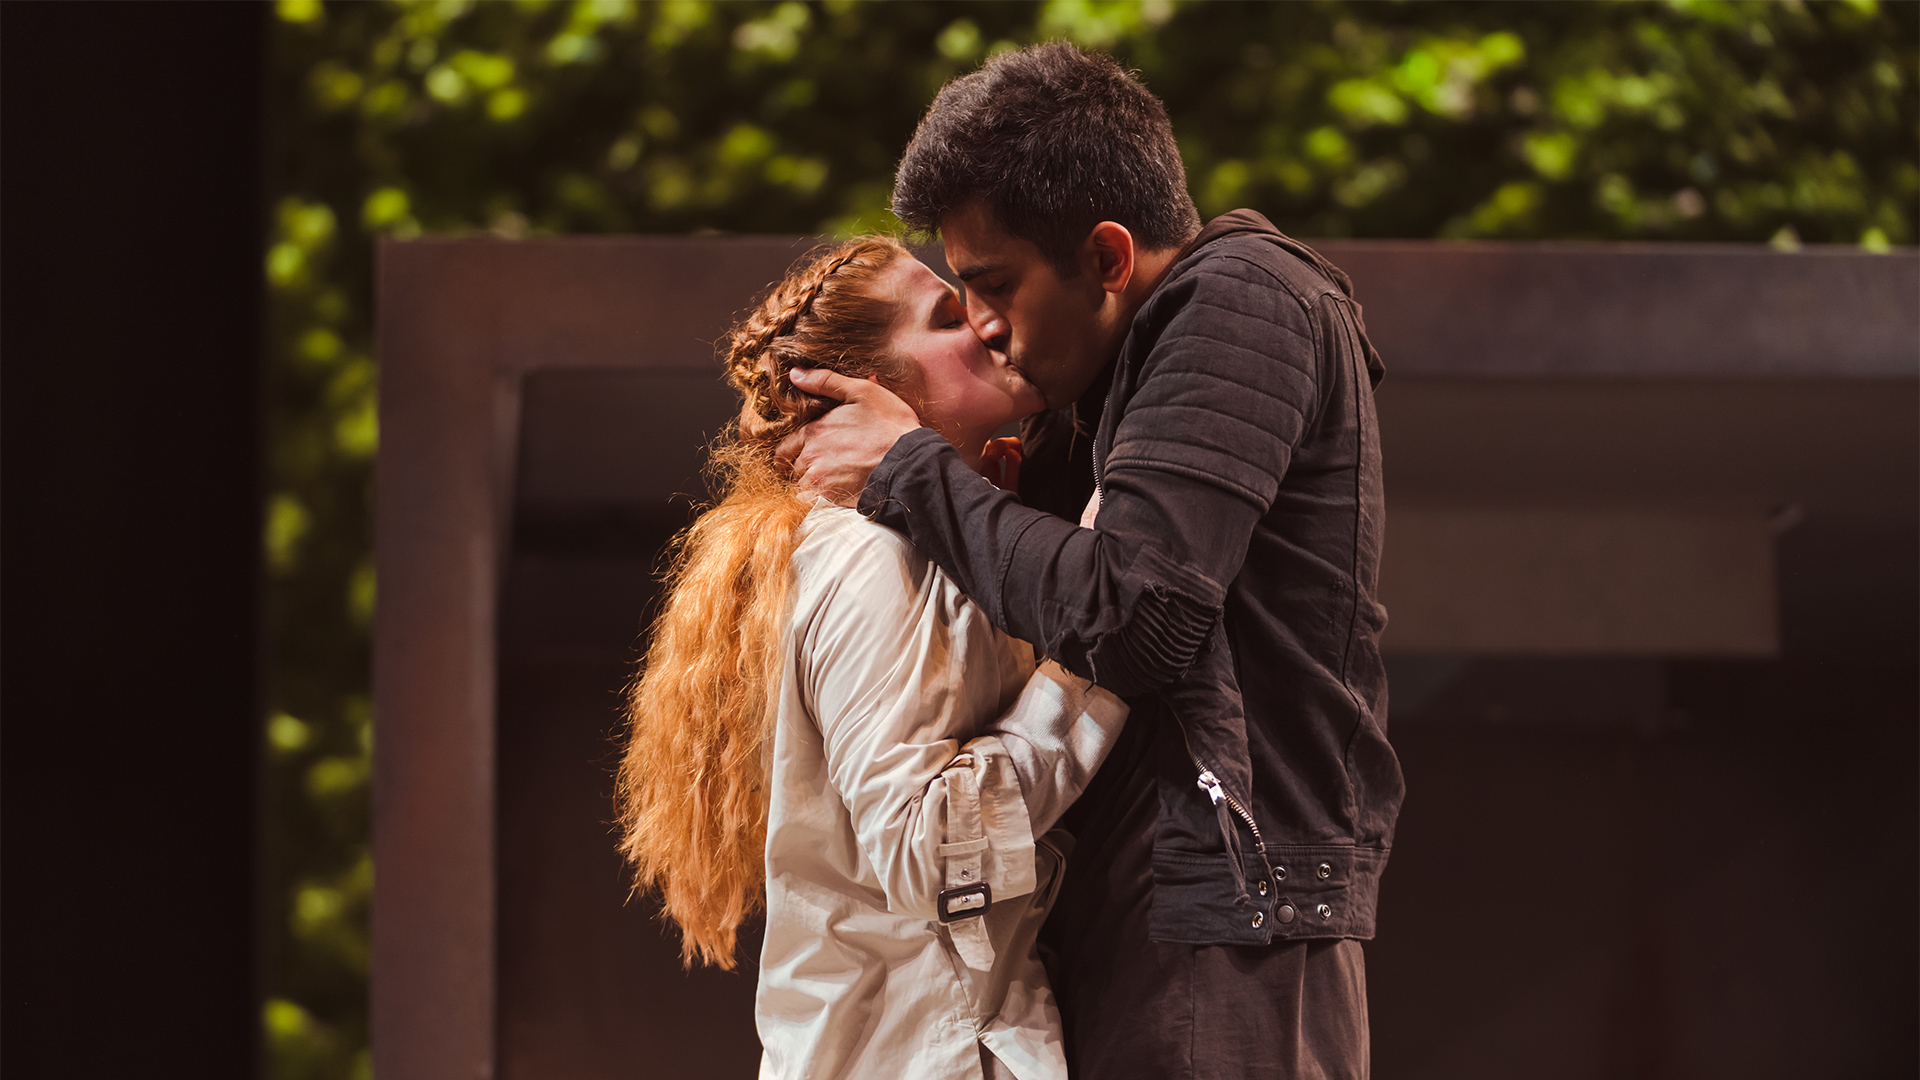 Romeo and Juliet embrace in front of a doorway.